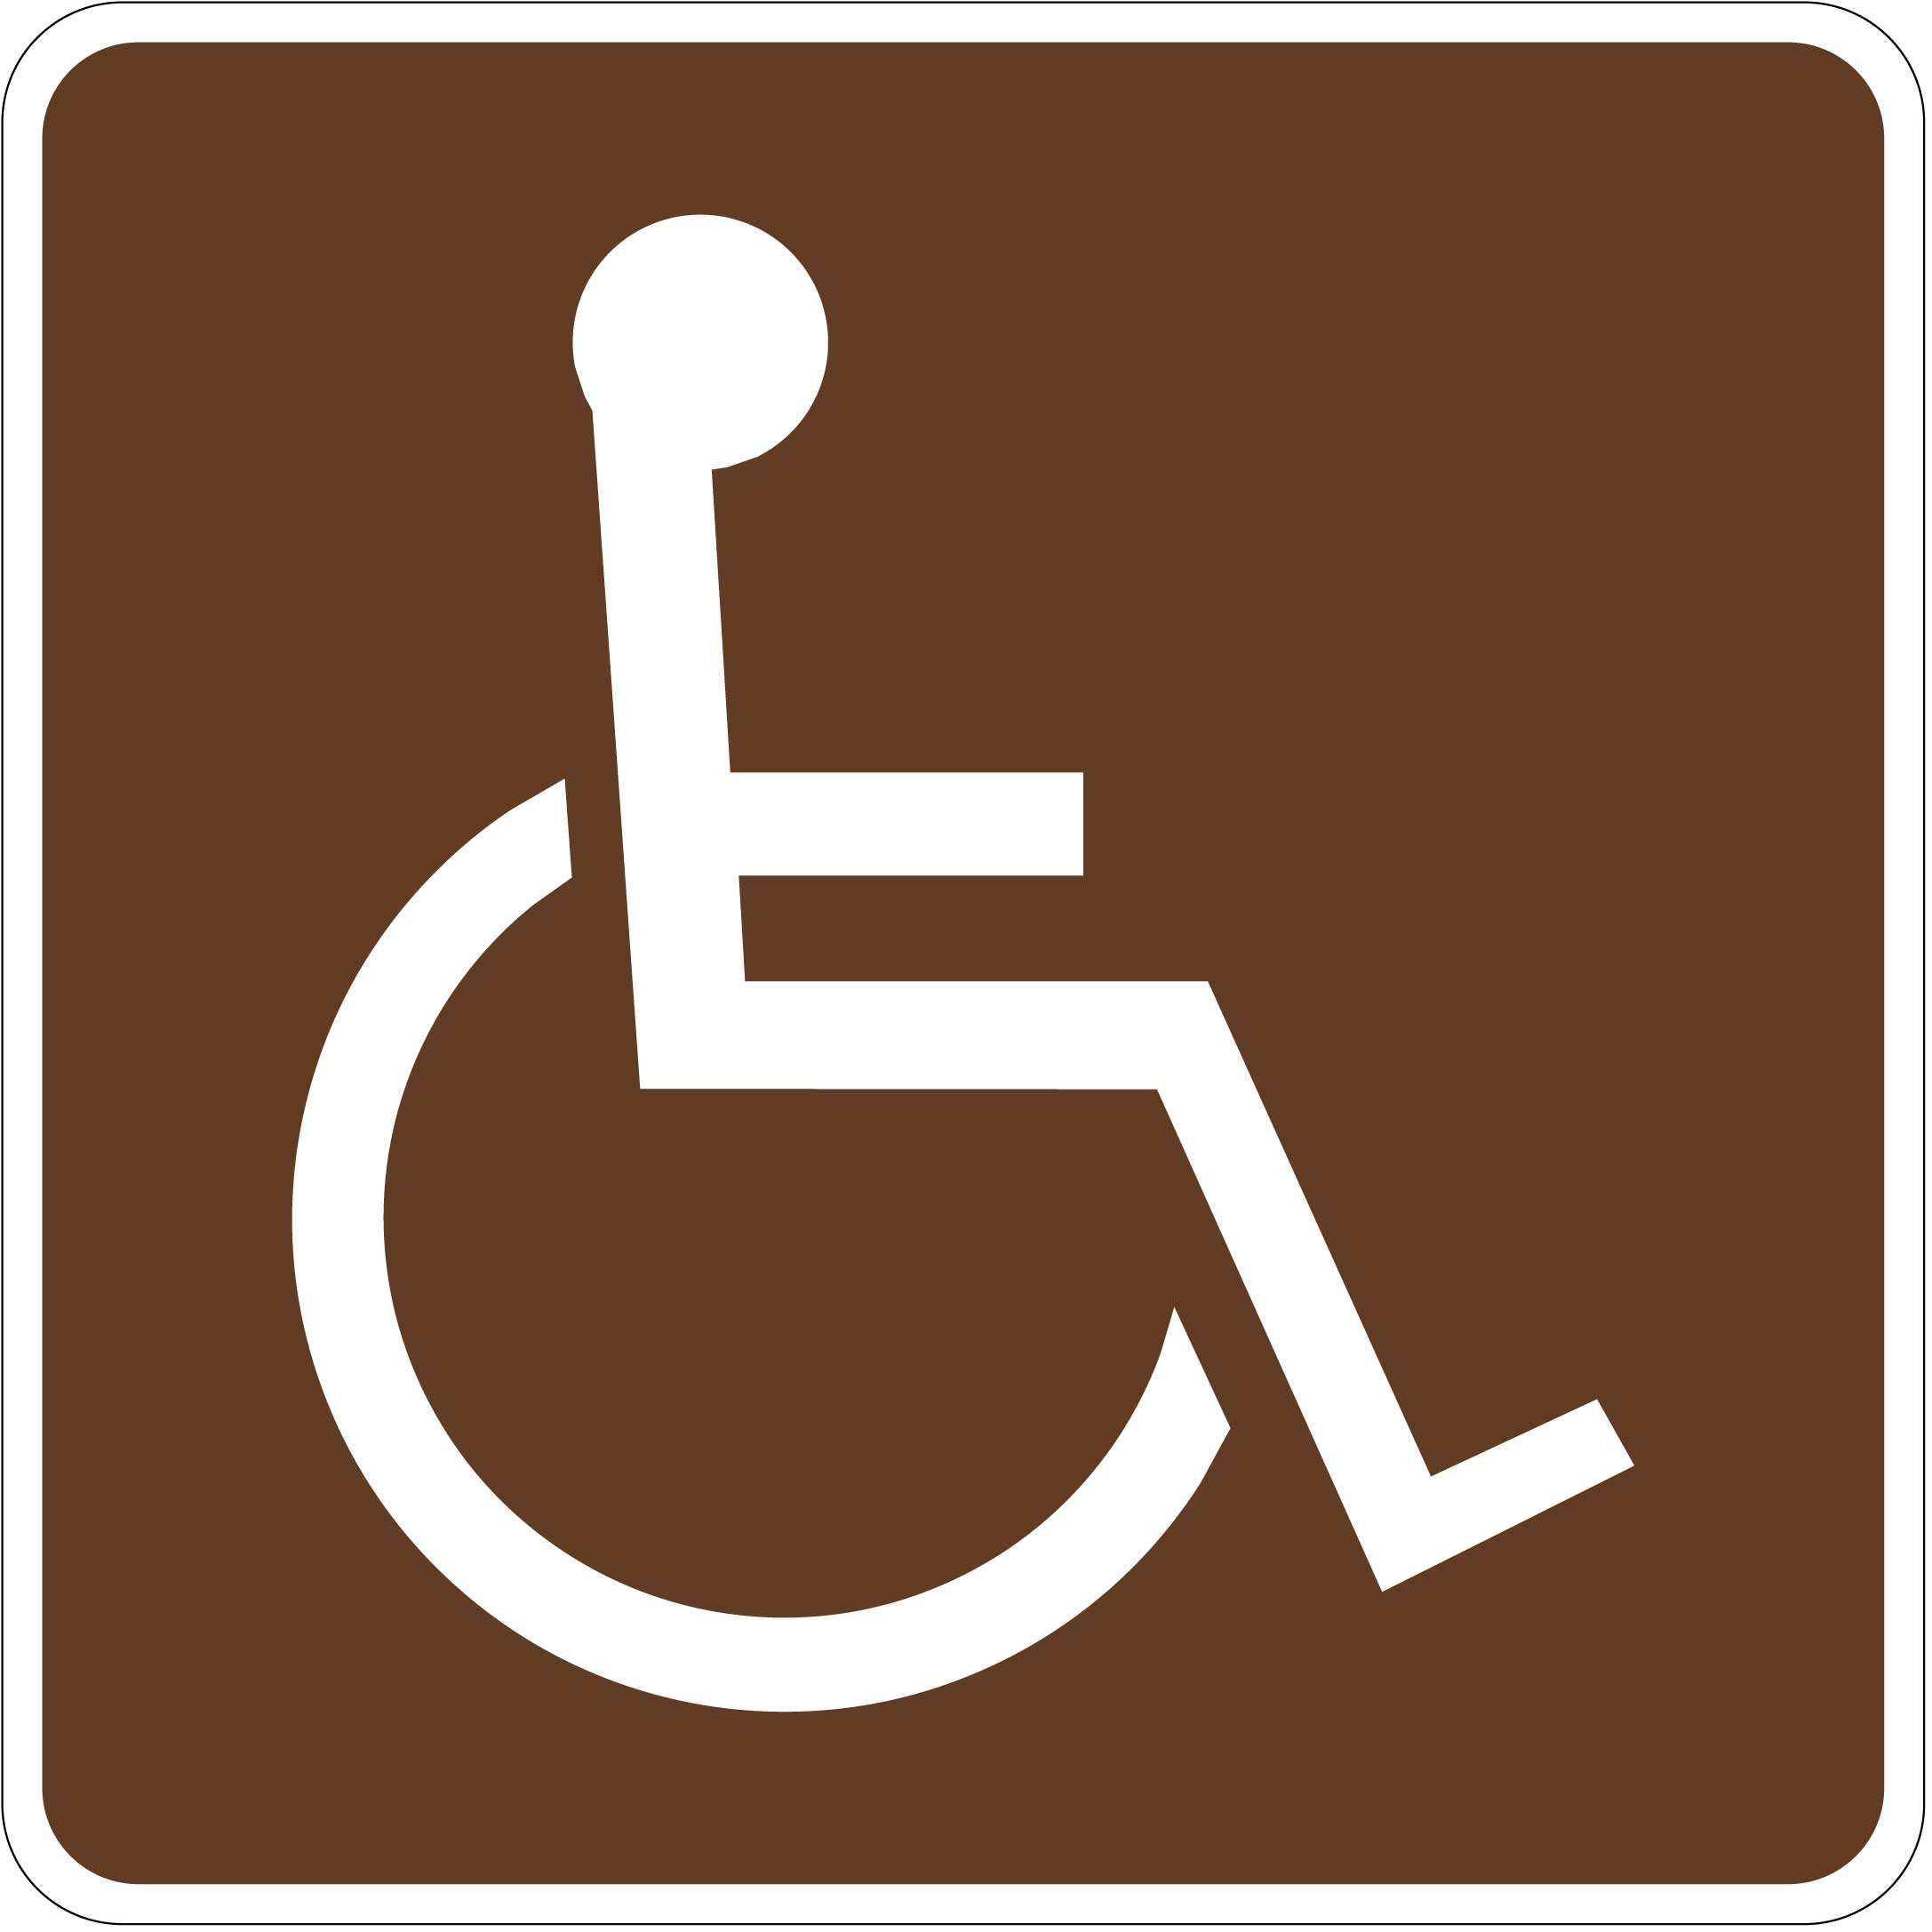 Outdoor clipart recreation  Viewing Free Handicap Clip